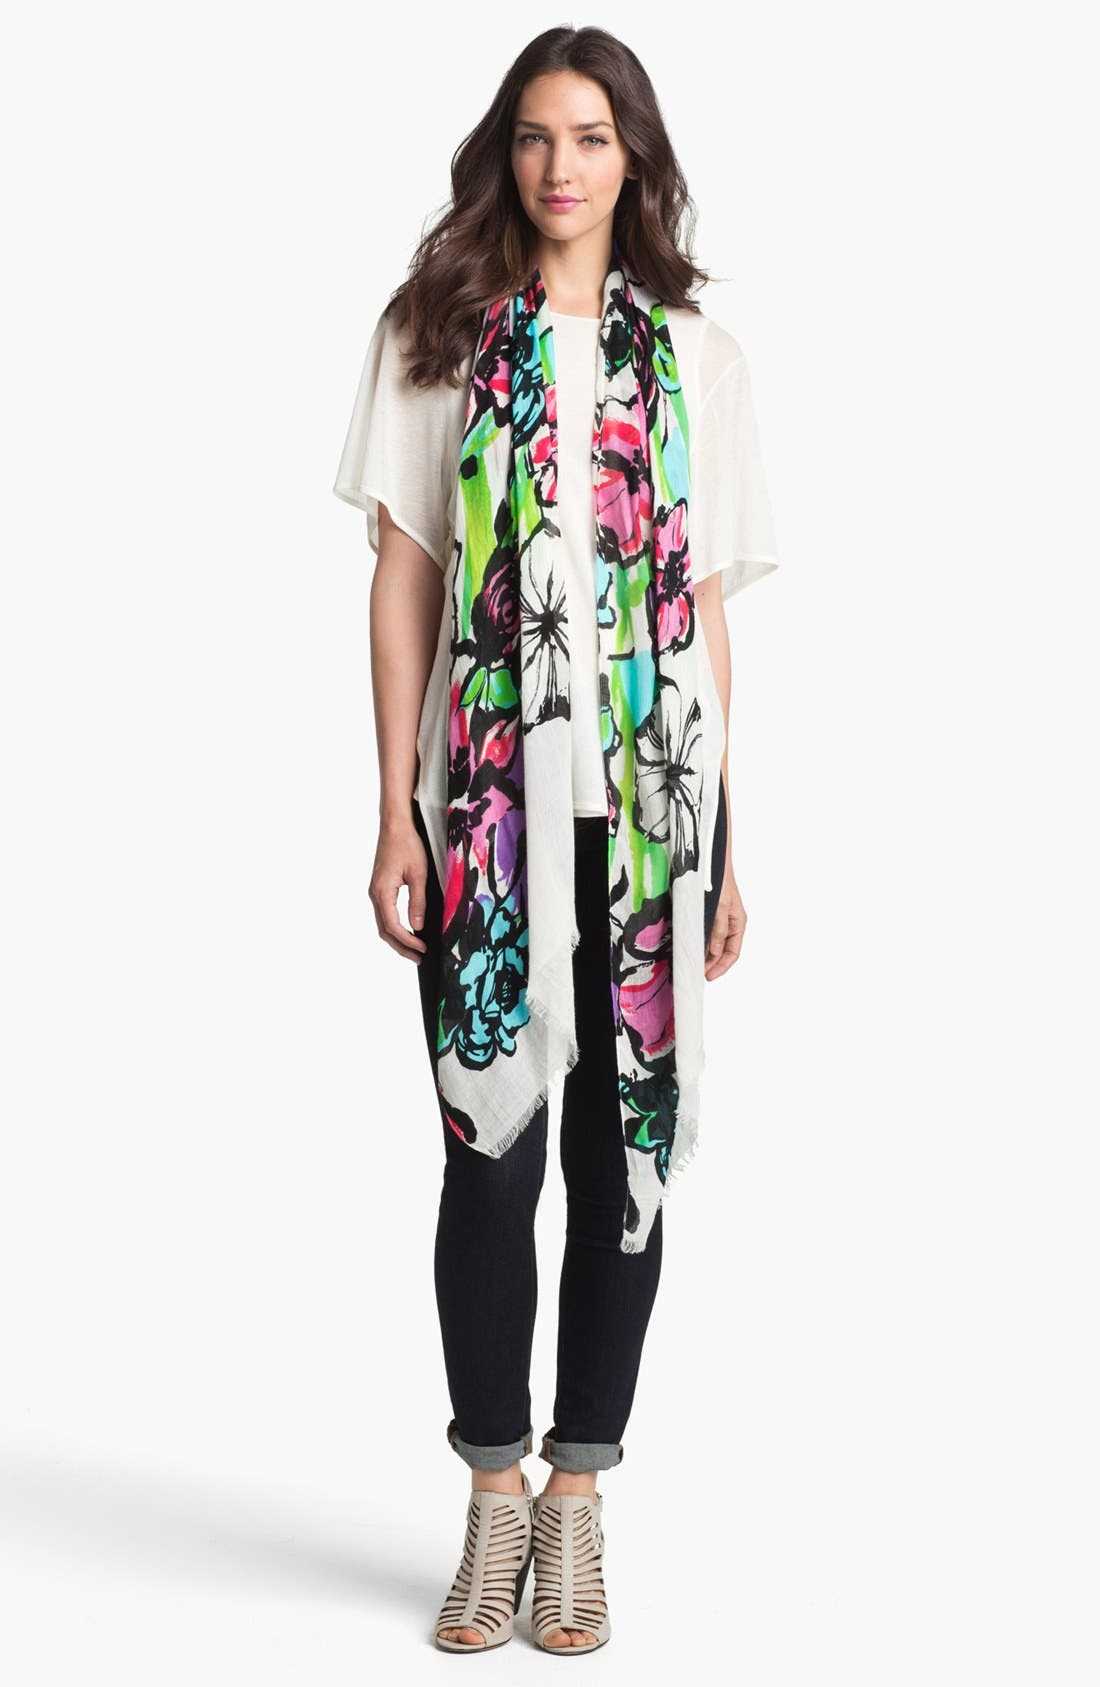 Alternate Image 1 Selected - Made of Me Accessories 'Forget Me Not Floral' Scarf